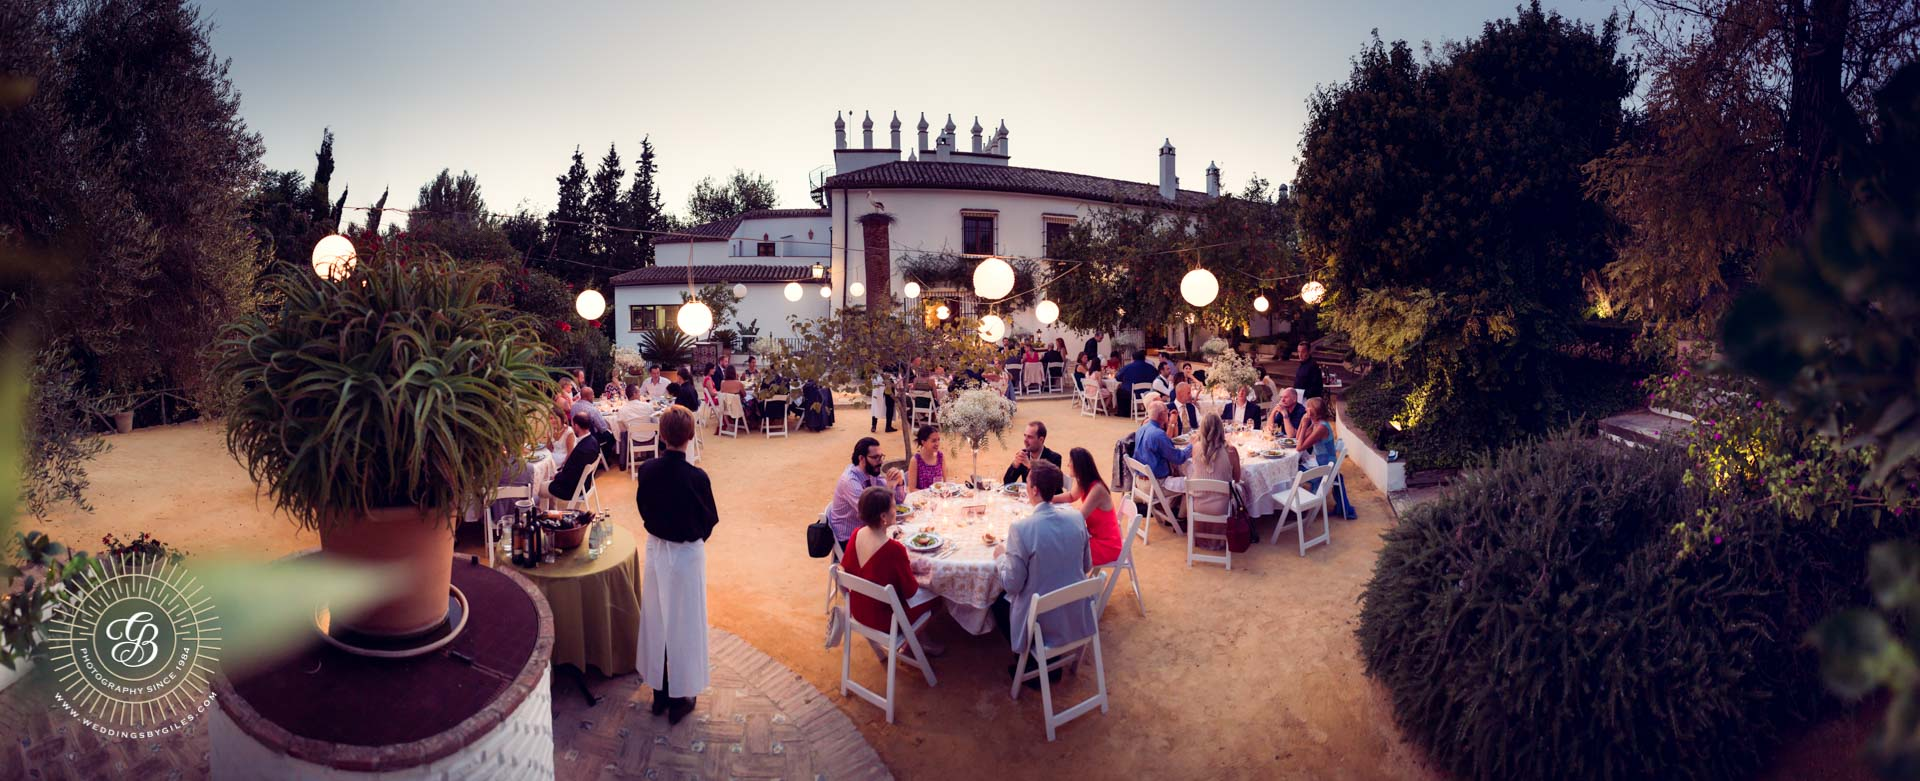 open air dinning at wedding at dusk